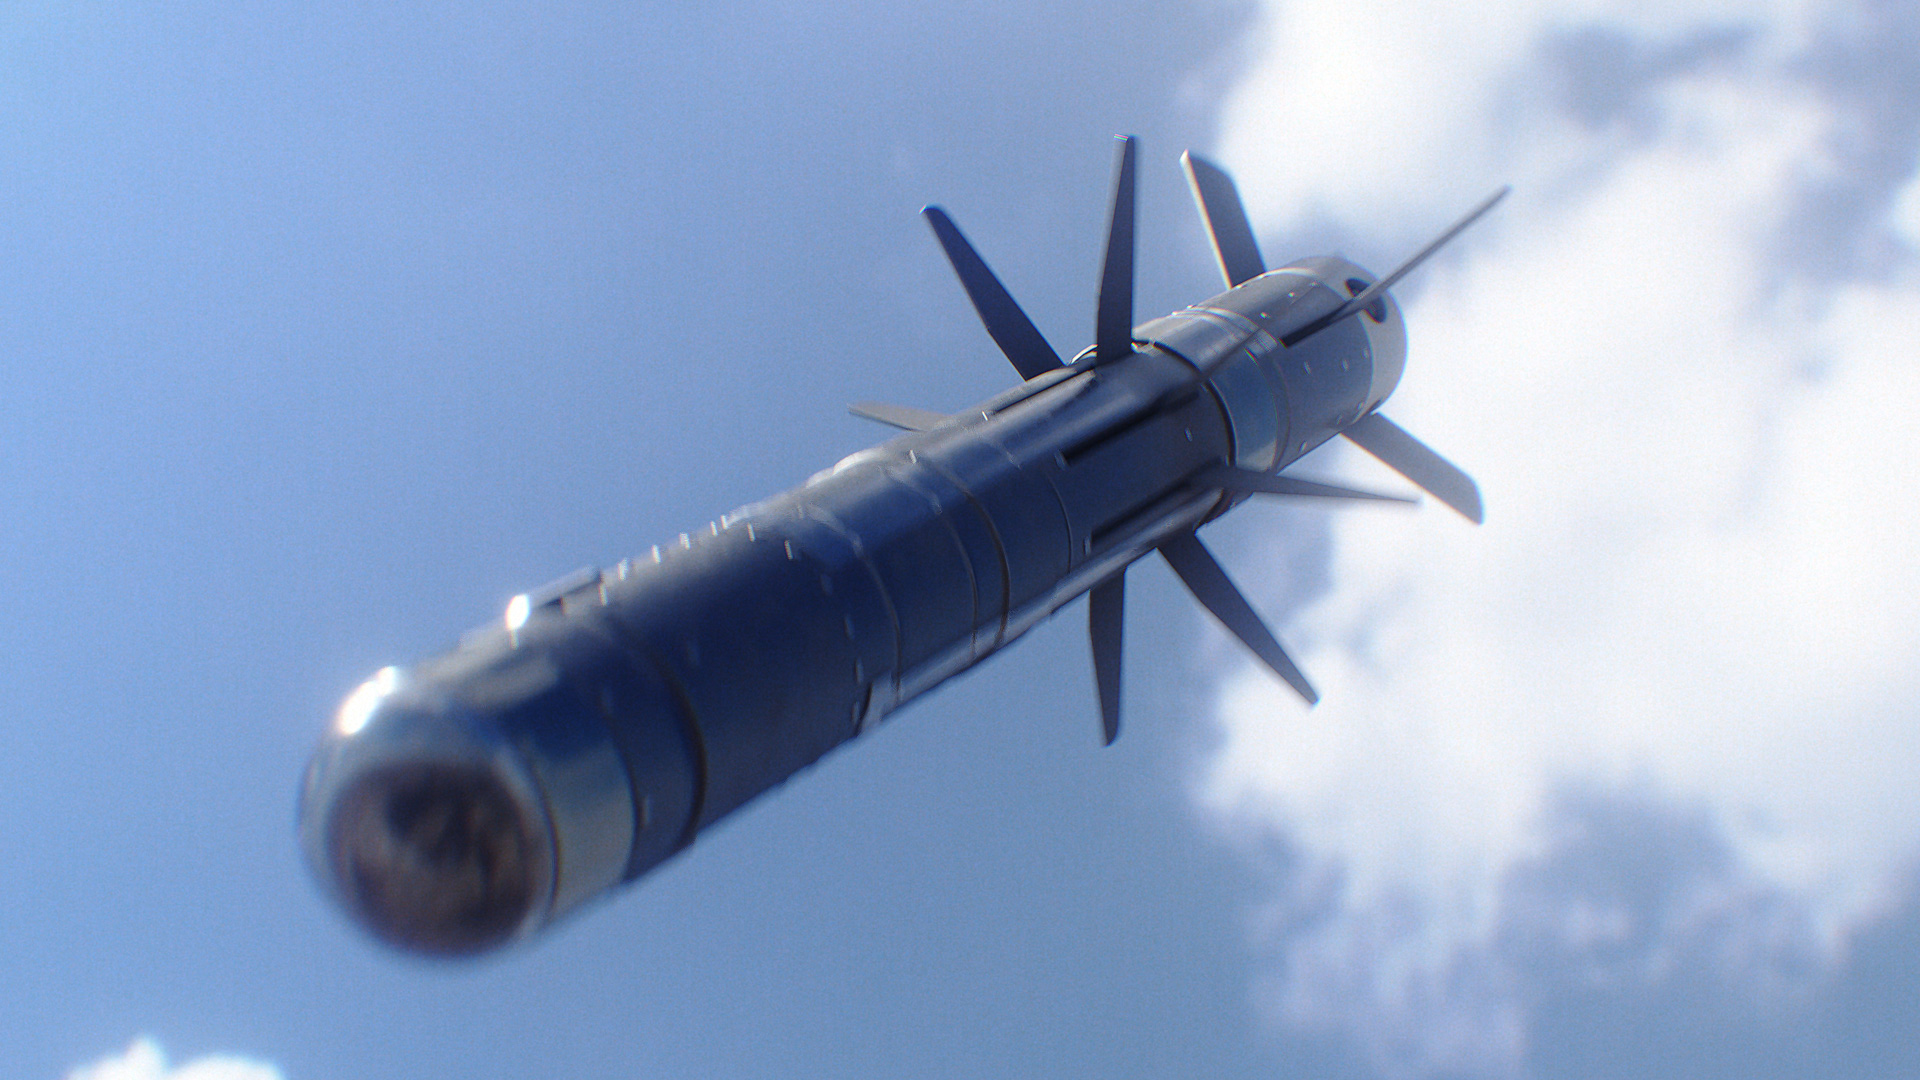 Download 3D Missile Models for your action movie